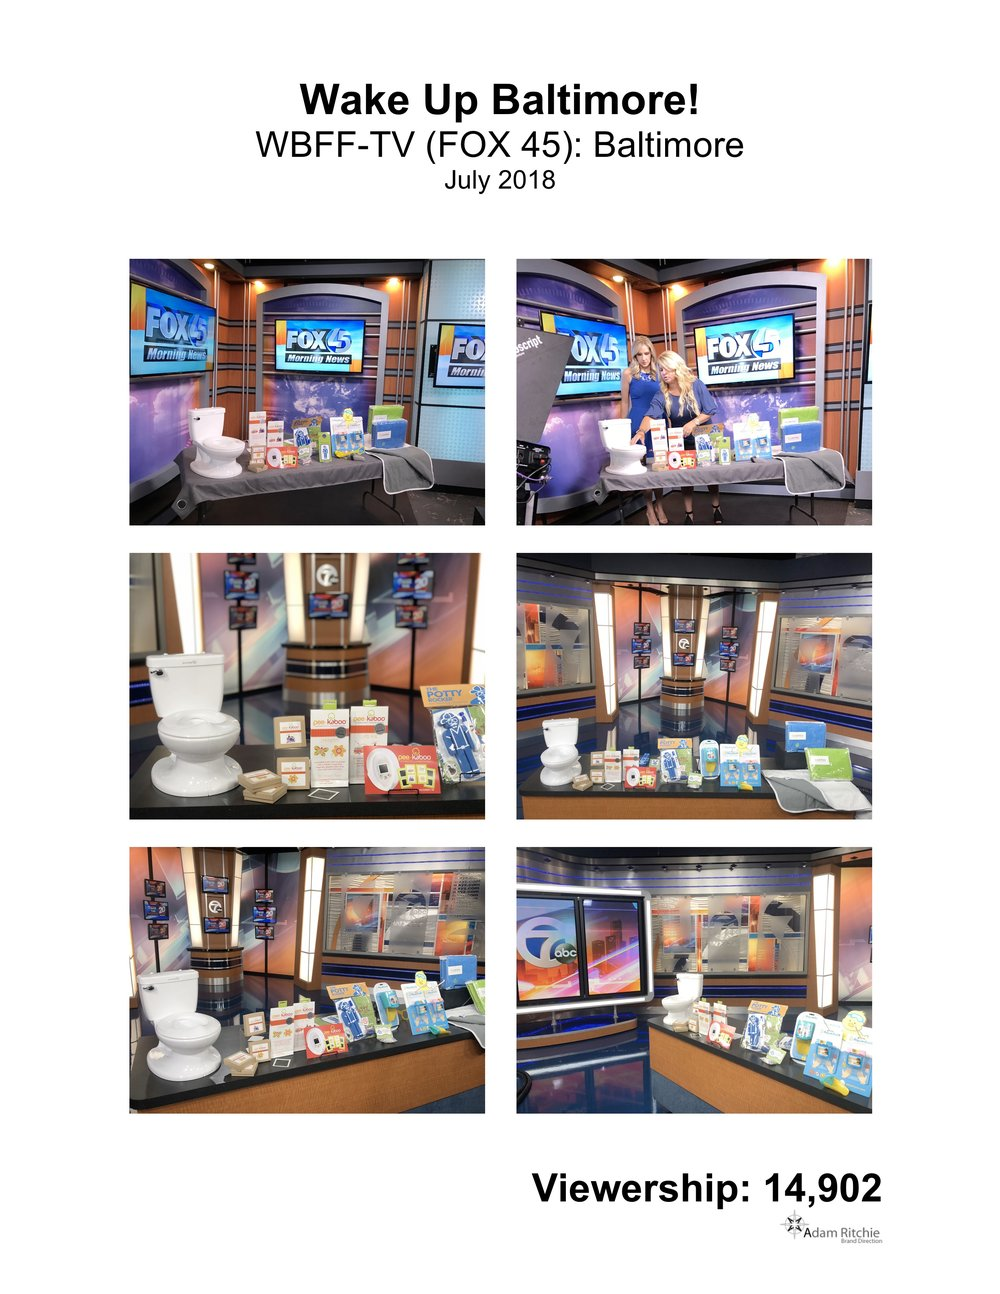 2018.07.21_WBFF-TV (FOX 45) Baltimore_Summer Infant My Size Potty.jpeg